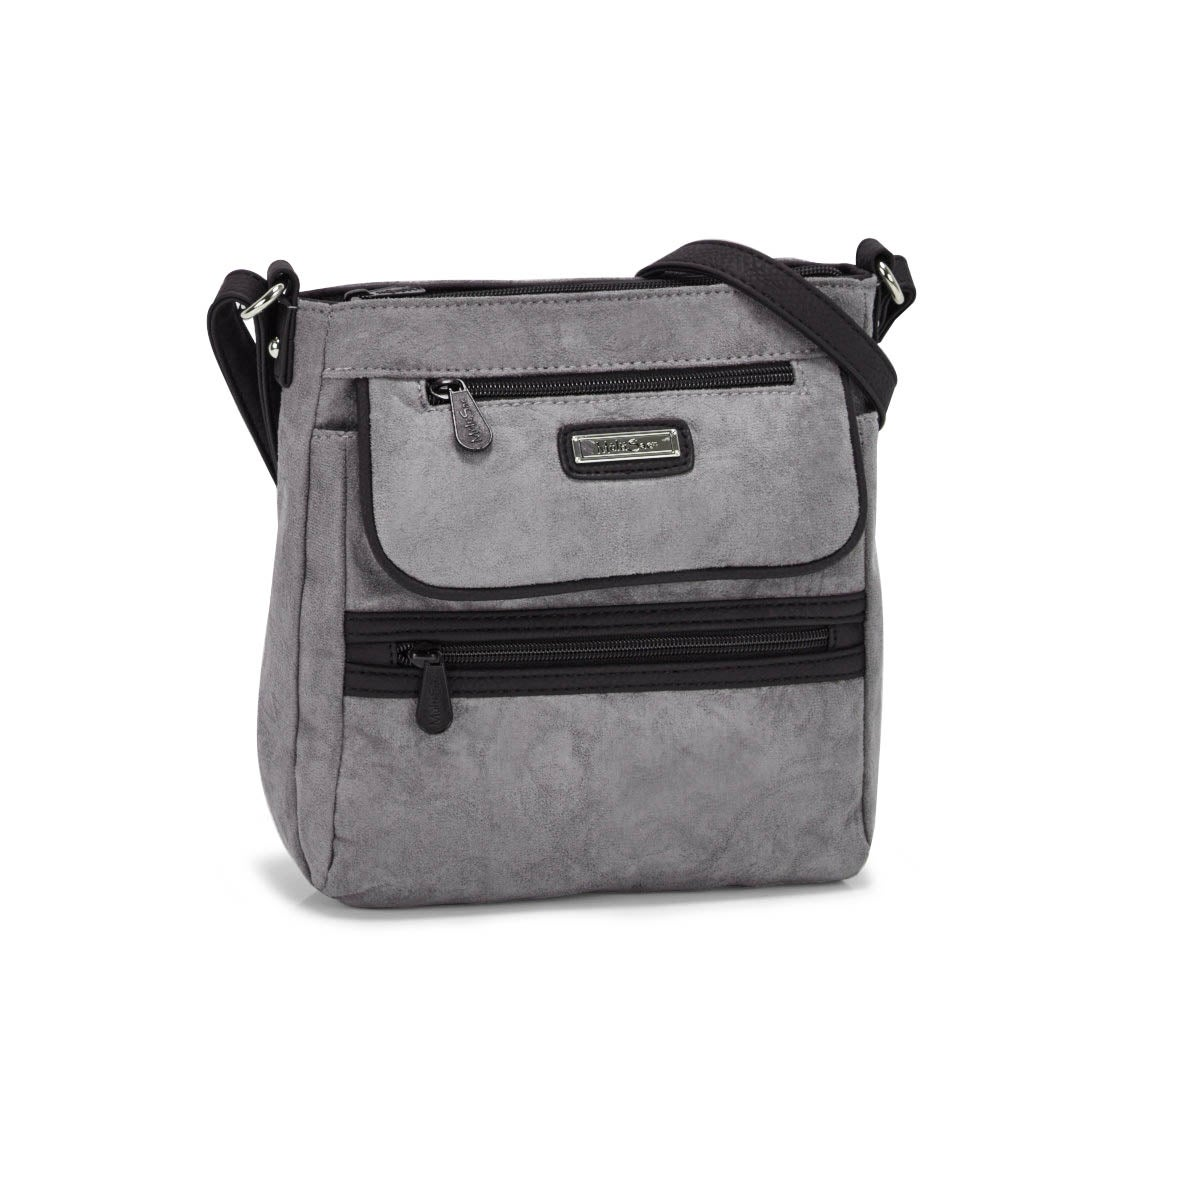 Lds Element oyster grey cross body